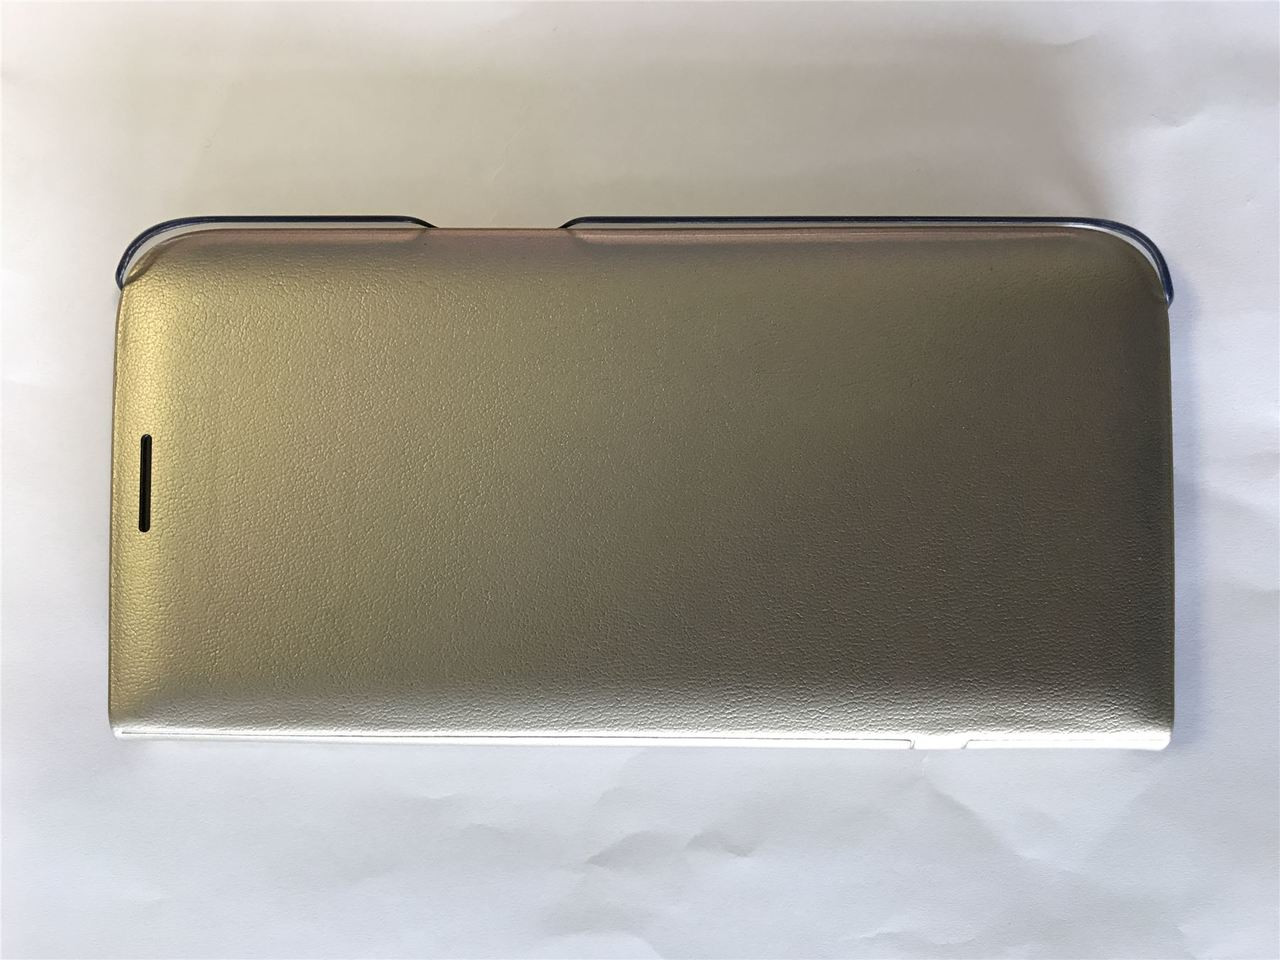 half off 3e052 0852a Genuine Samsung Galaxy S7 edge LED Display Flip View Case Cover - Gold  (EF-NG935PFEGWW) - Bulk Packed / Retail Packaging Missing